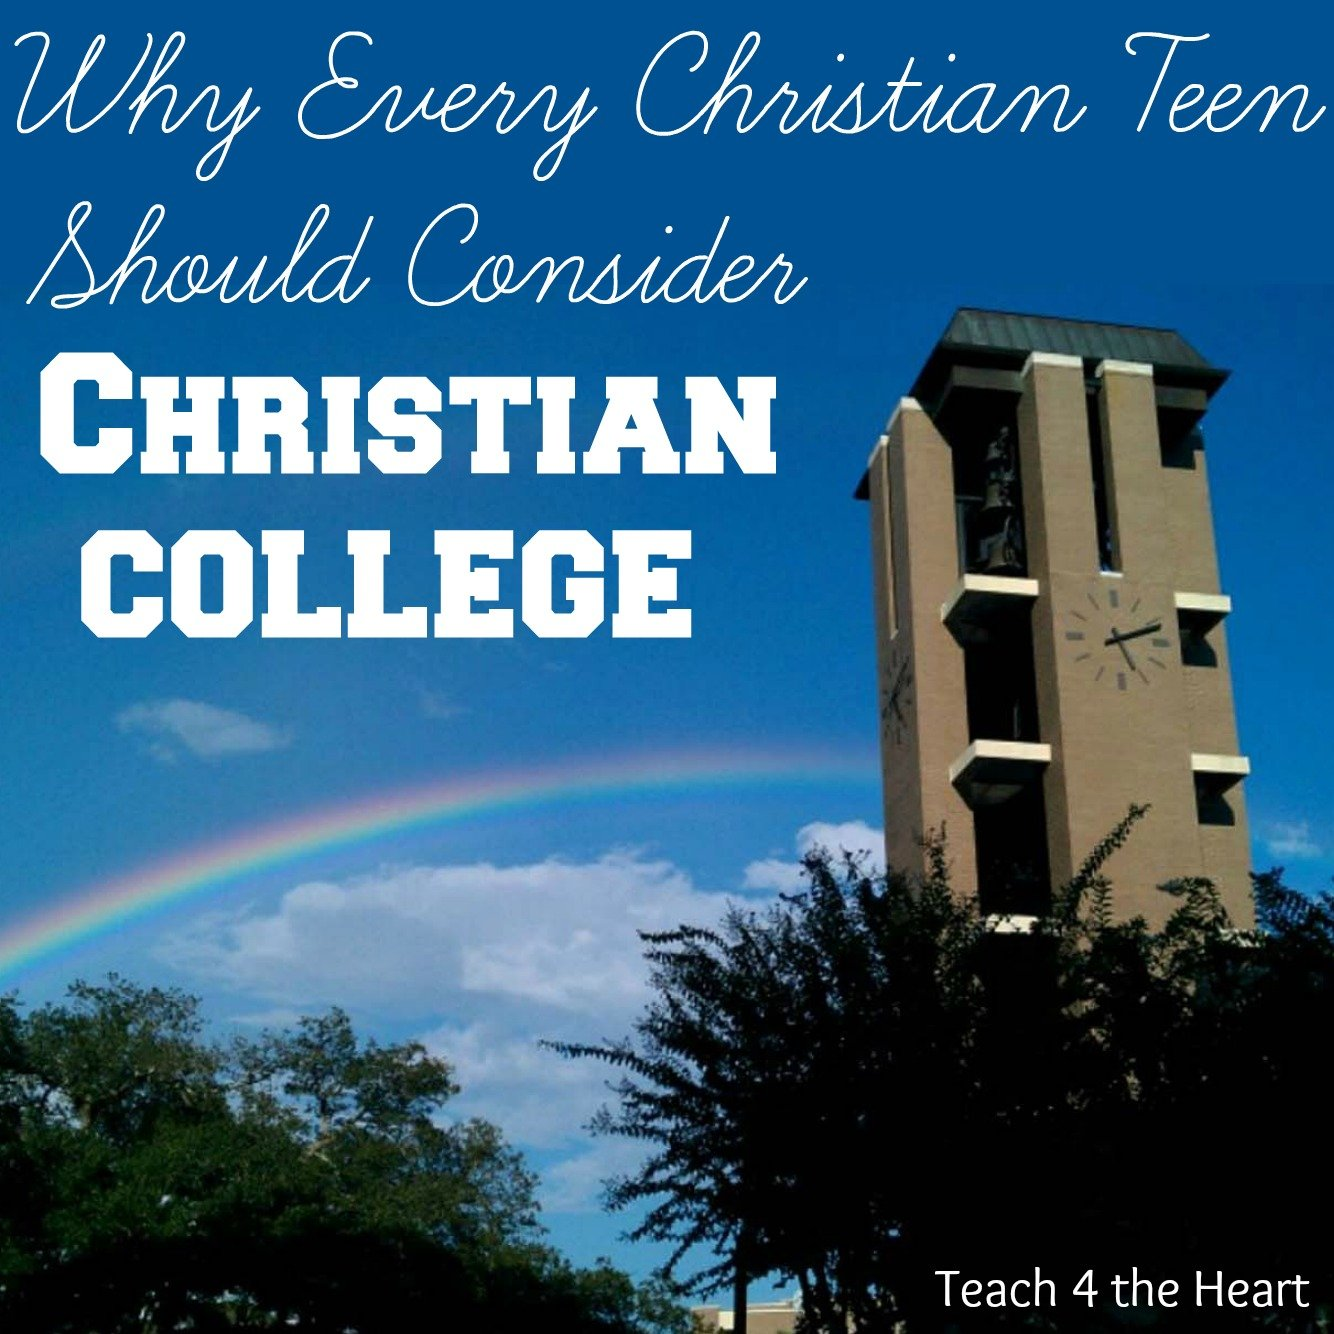 Why every Christian teen should consider attending a Christian college